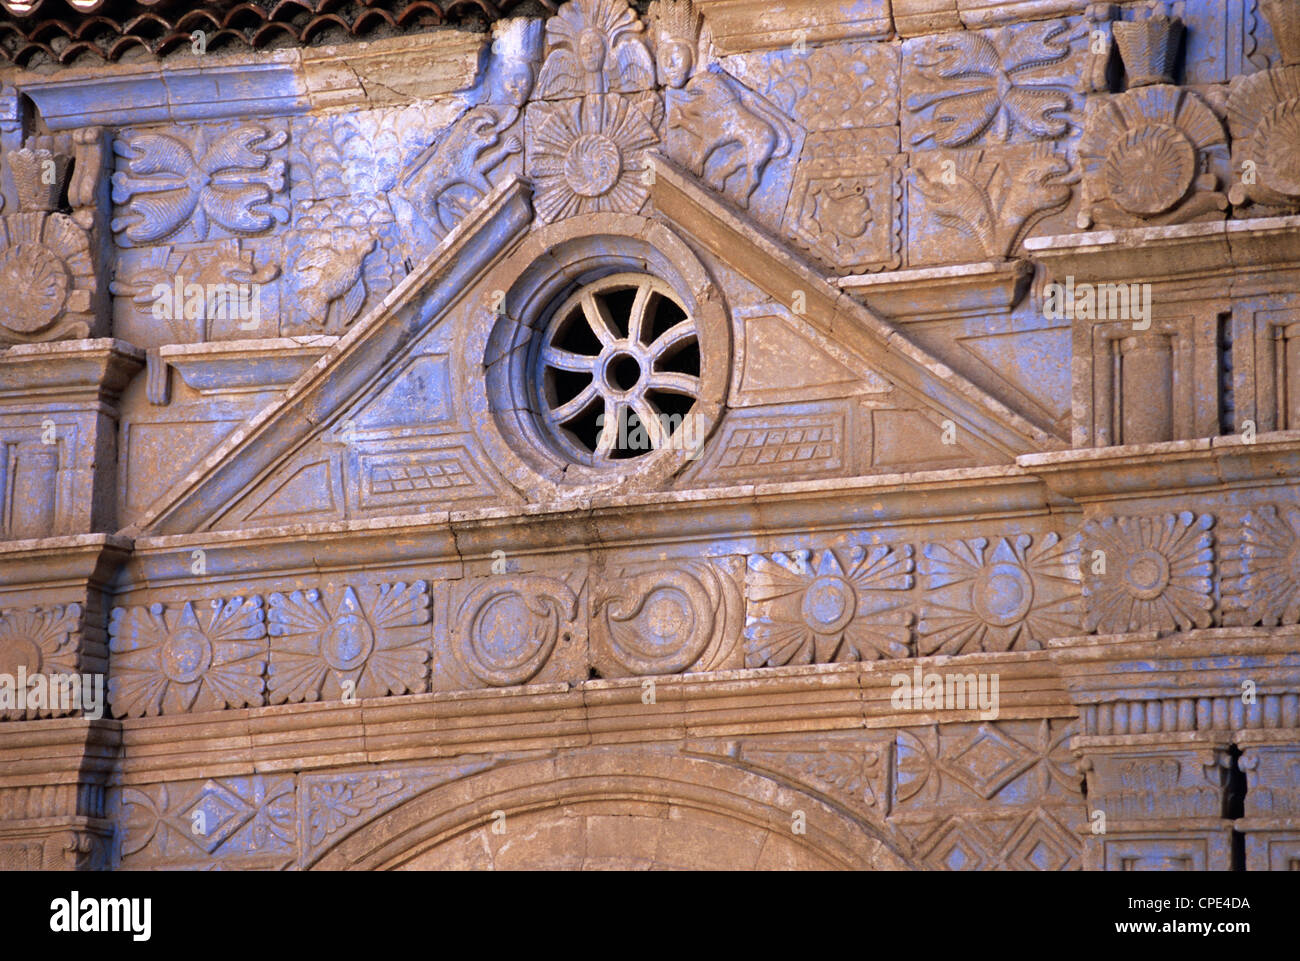 Door arch inspired by Aztec designs of the parish church of Our Lady of Regla, Pajara, Fuerteventura, Canary Islands, - Stock Image